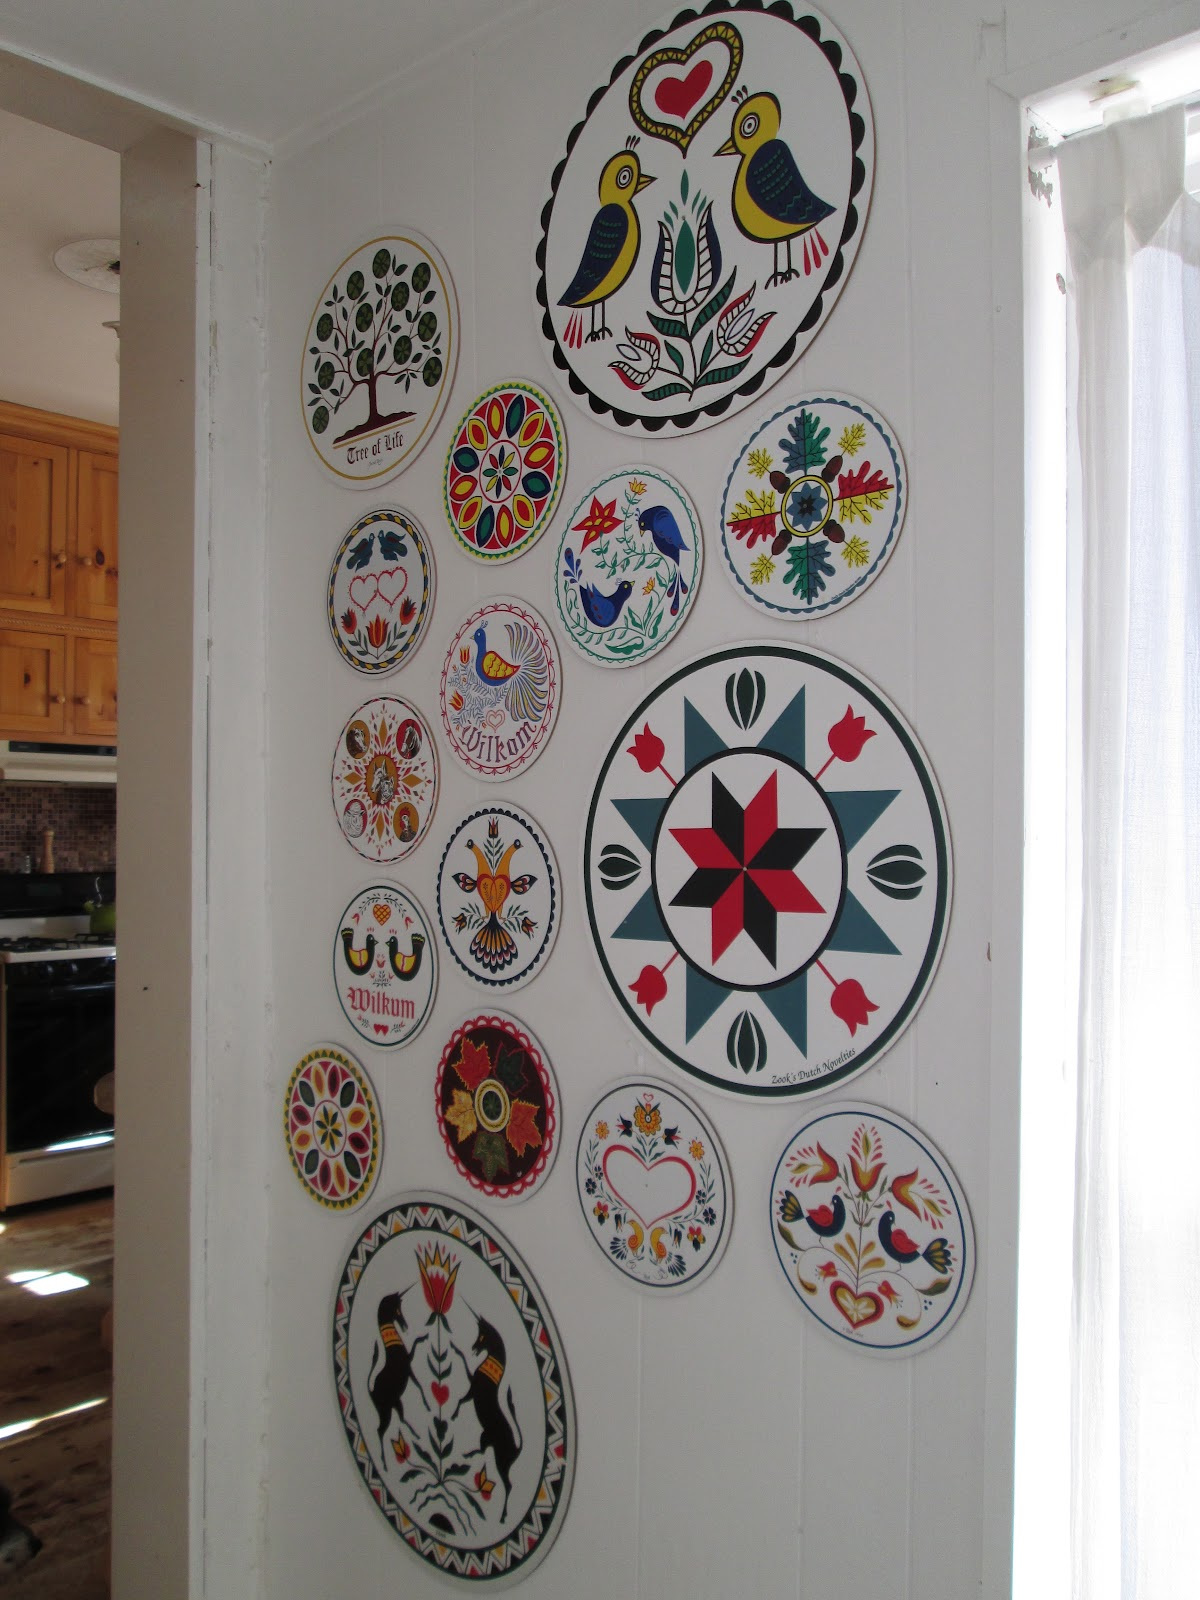 Scranberry coop hex signs hex signs have been the subject of a lot of misinformation myth and confusion theyre the colorful round pennsylvania dutch decorations we all recognize biocorpaavc Images